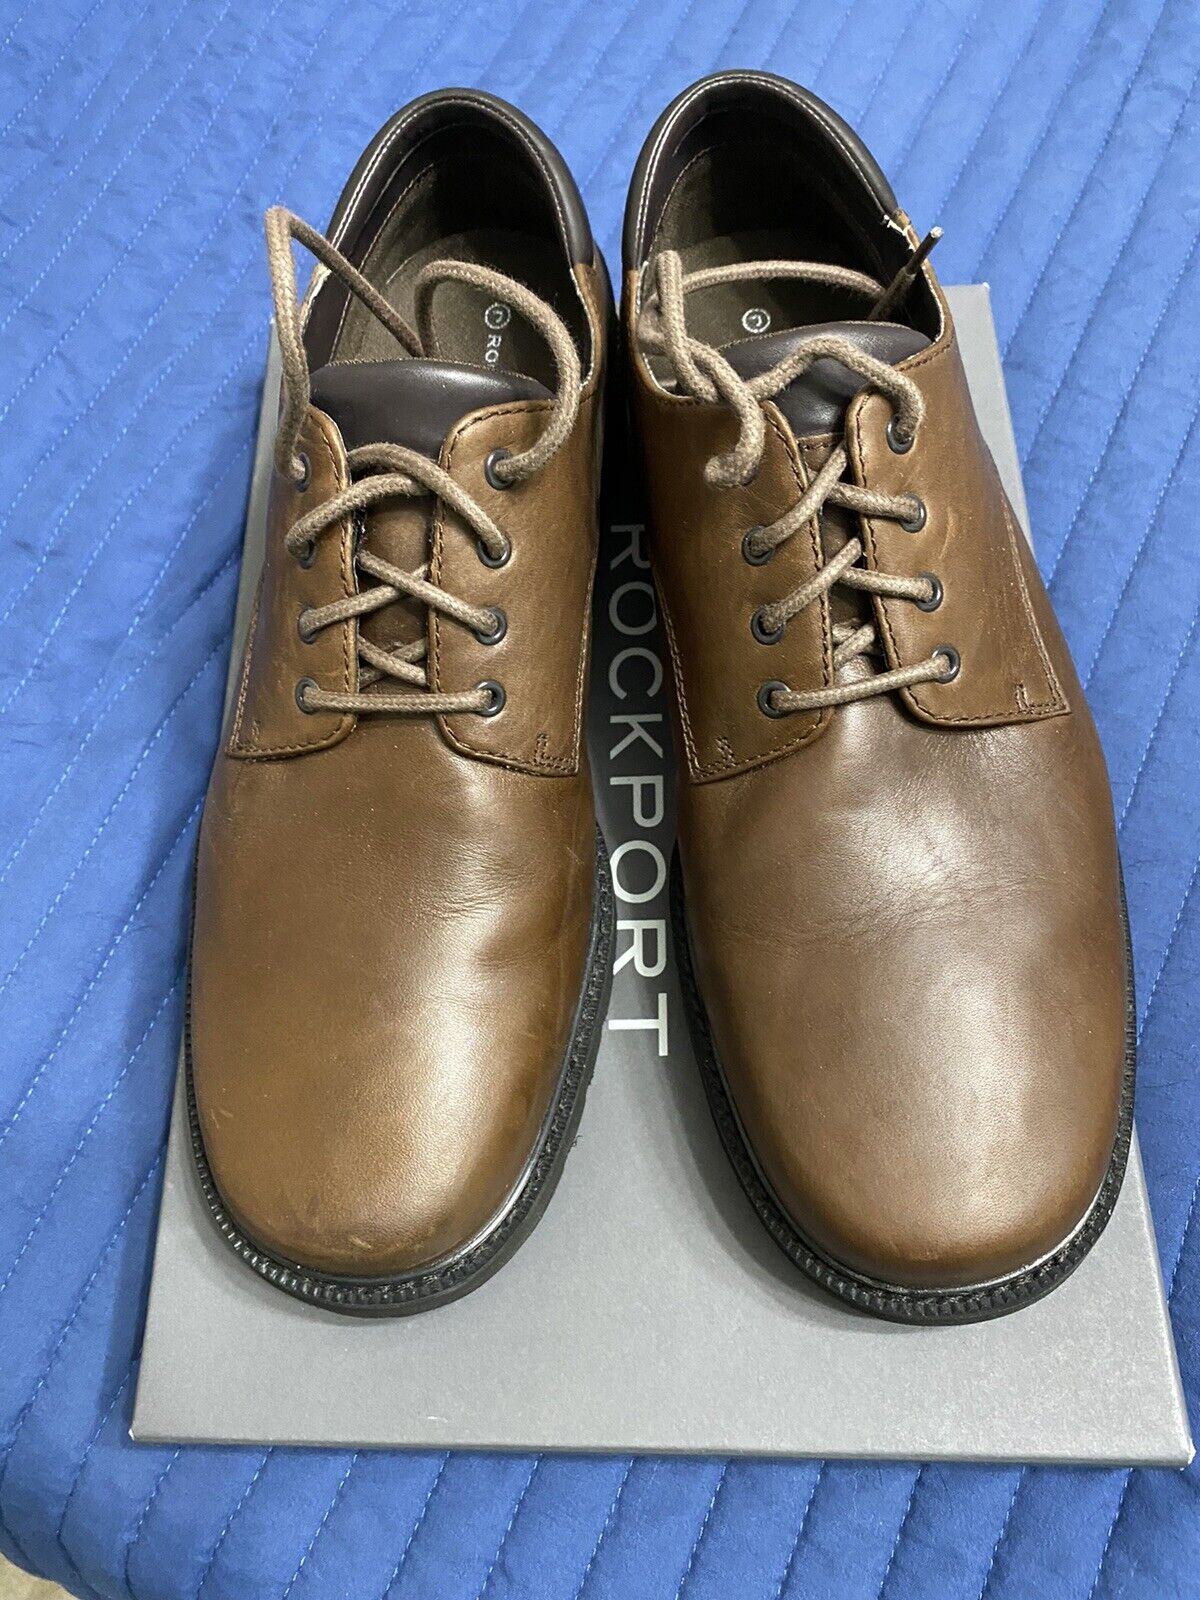 Joseph Abboud Mens Leather Dress / Casual Shoes Brown Size 11.5M Great Condition